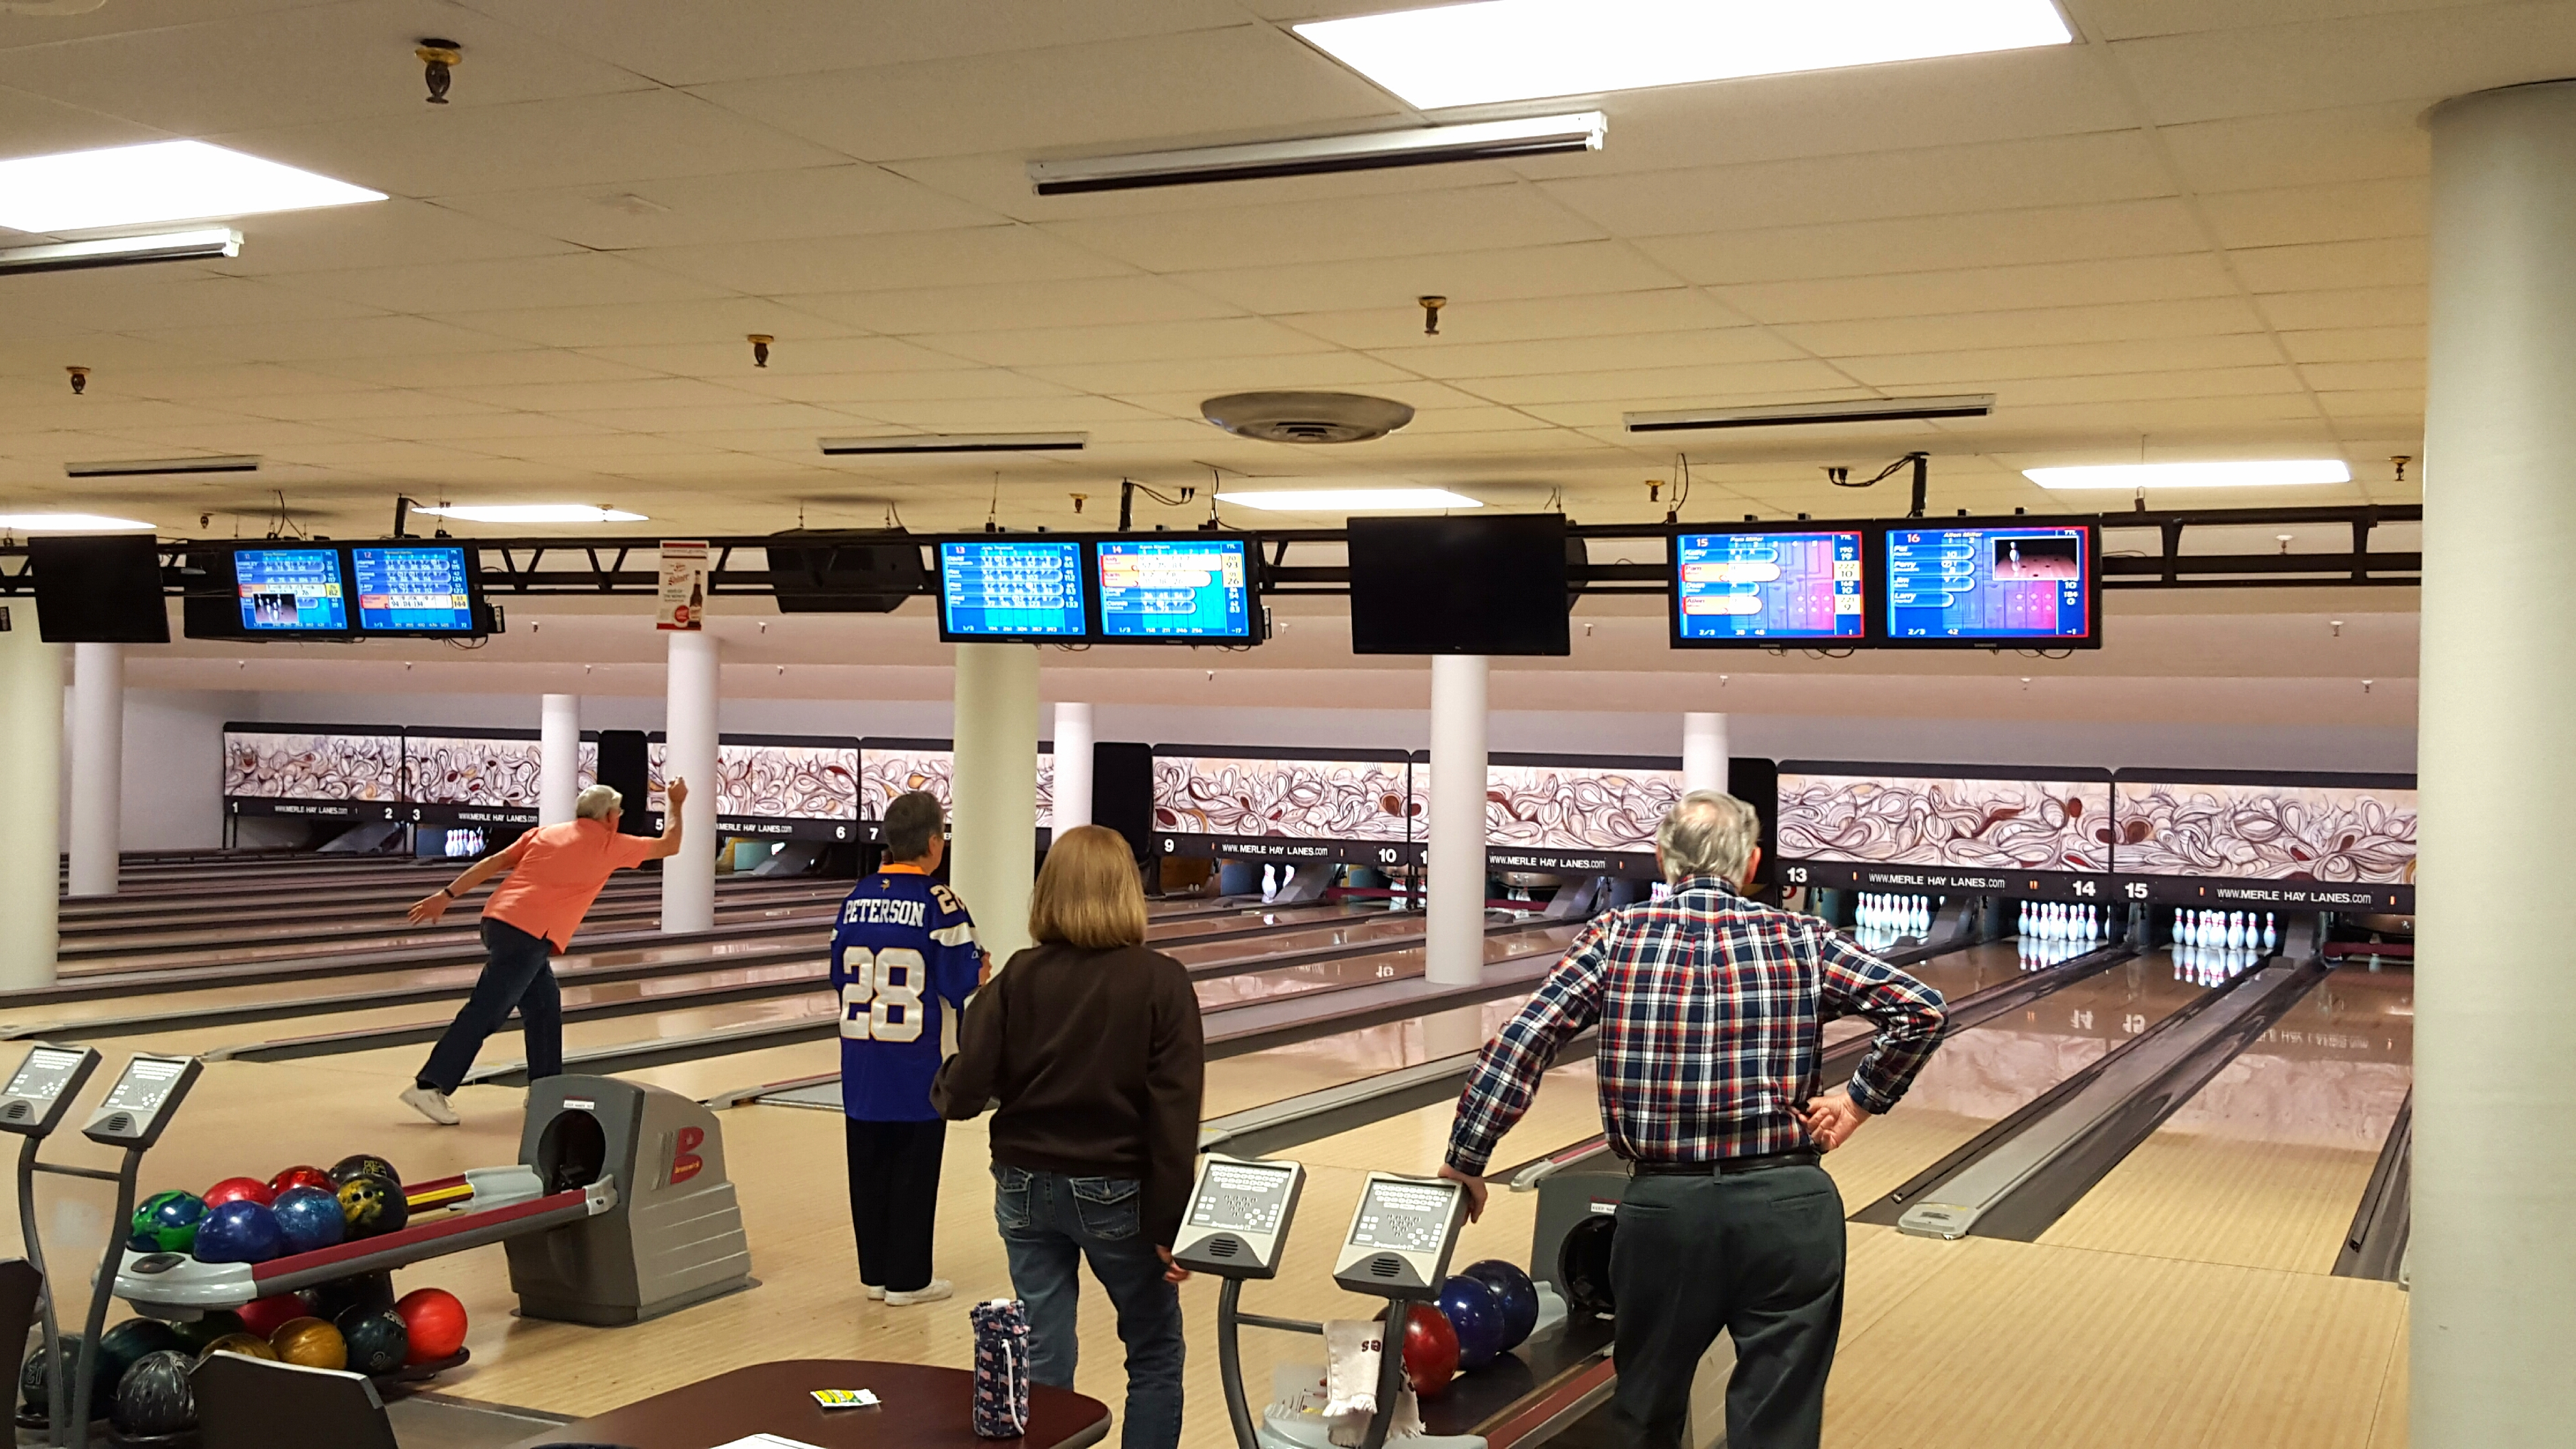 Top 25 Hotels Near Merle HAY Lanes in Des Moines, IA ...